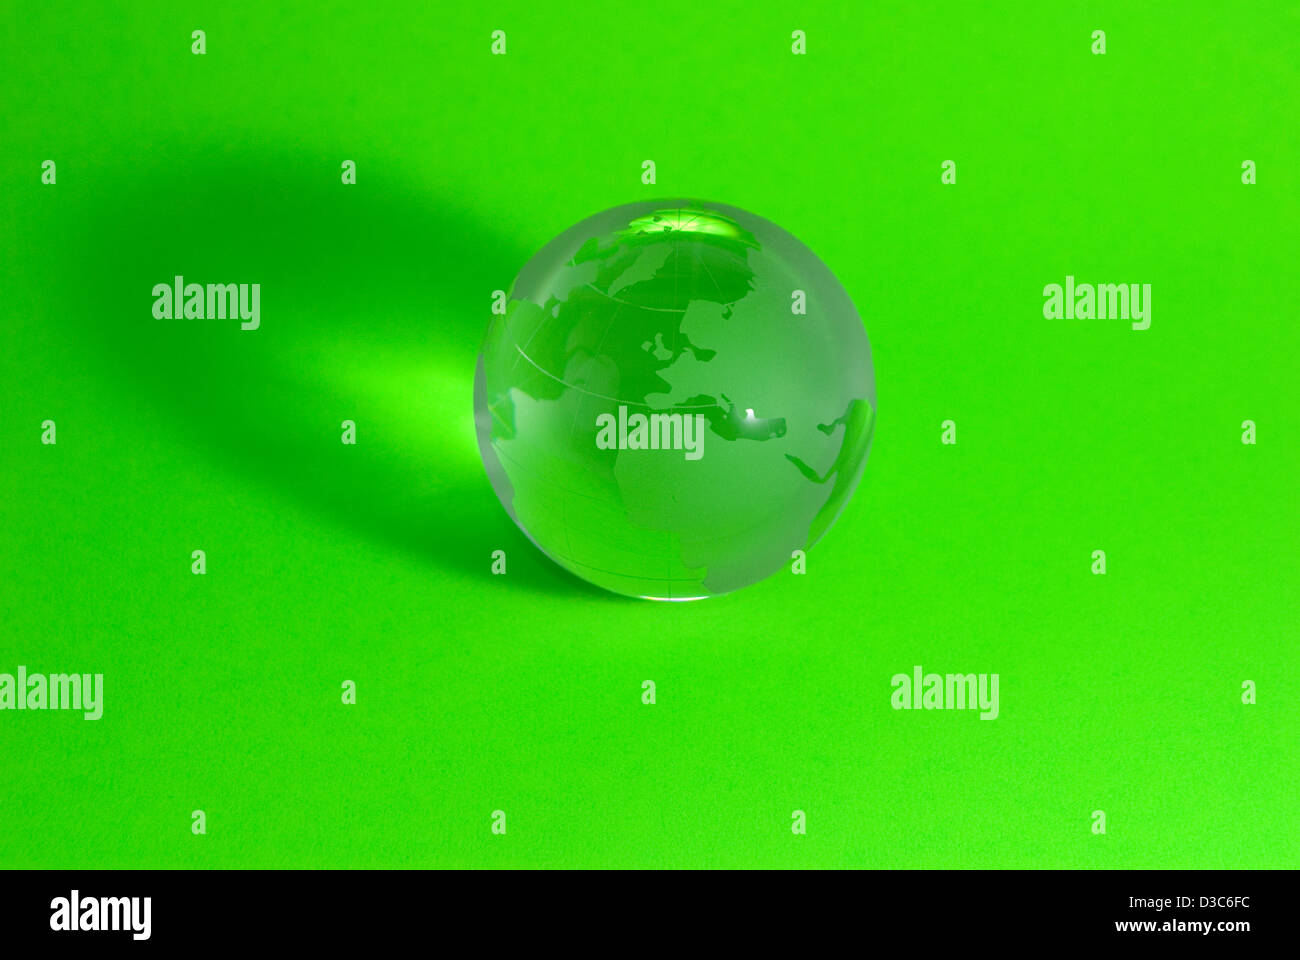 Glass earth globe or sphere on green background - Stock Image